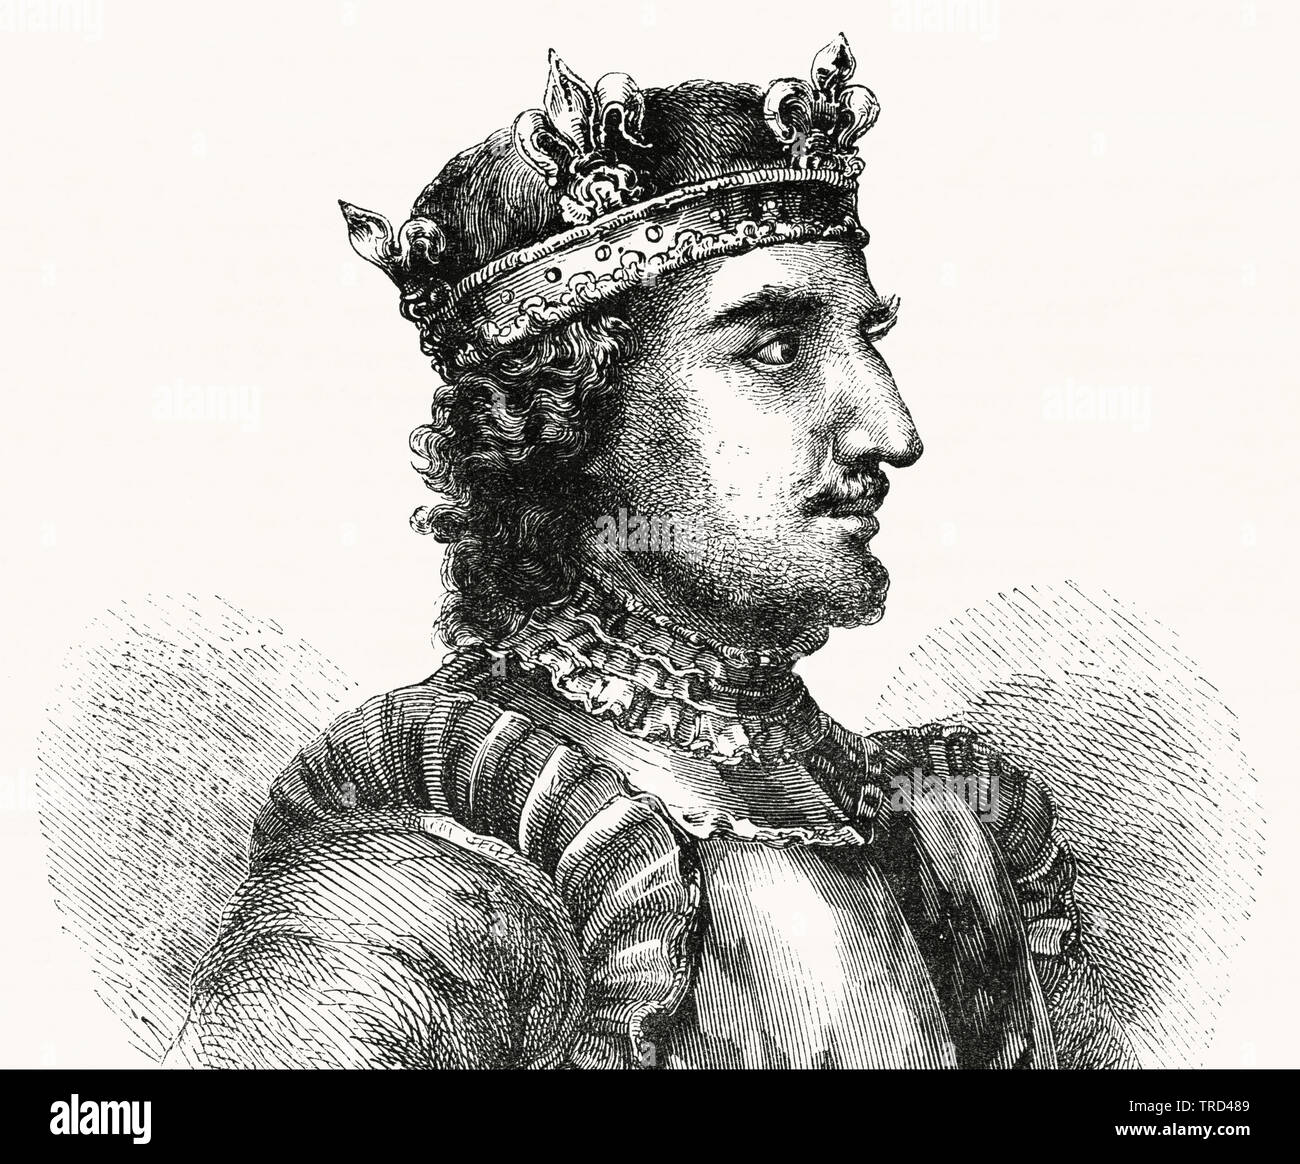 Stephen, Illustration from John Cassell's Illustrated History of England, Vol. I from the earliest period to the reign of Edward the Fourth, Cassell, Petter and Galpin, 1857 - Stock Image